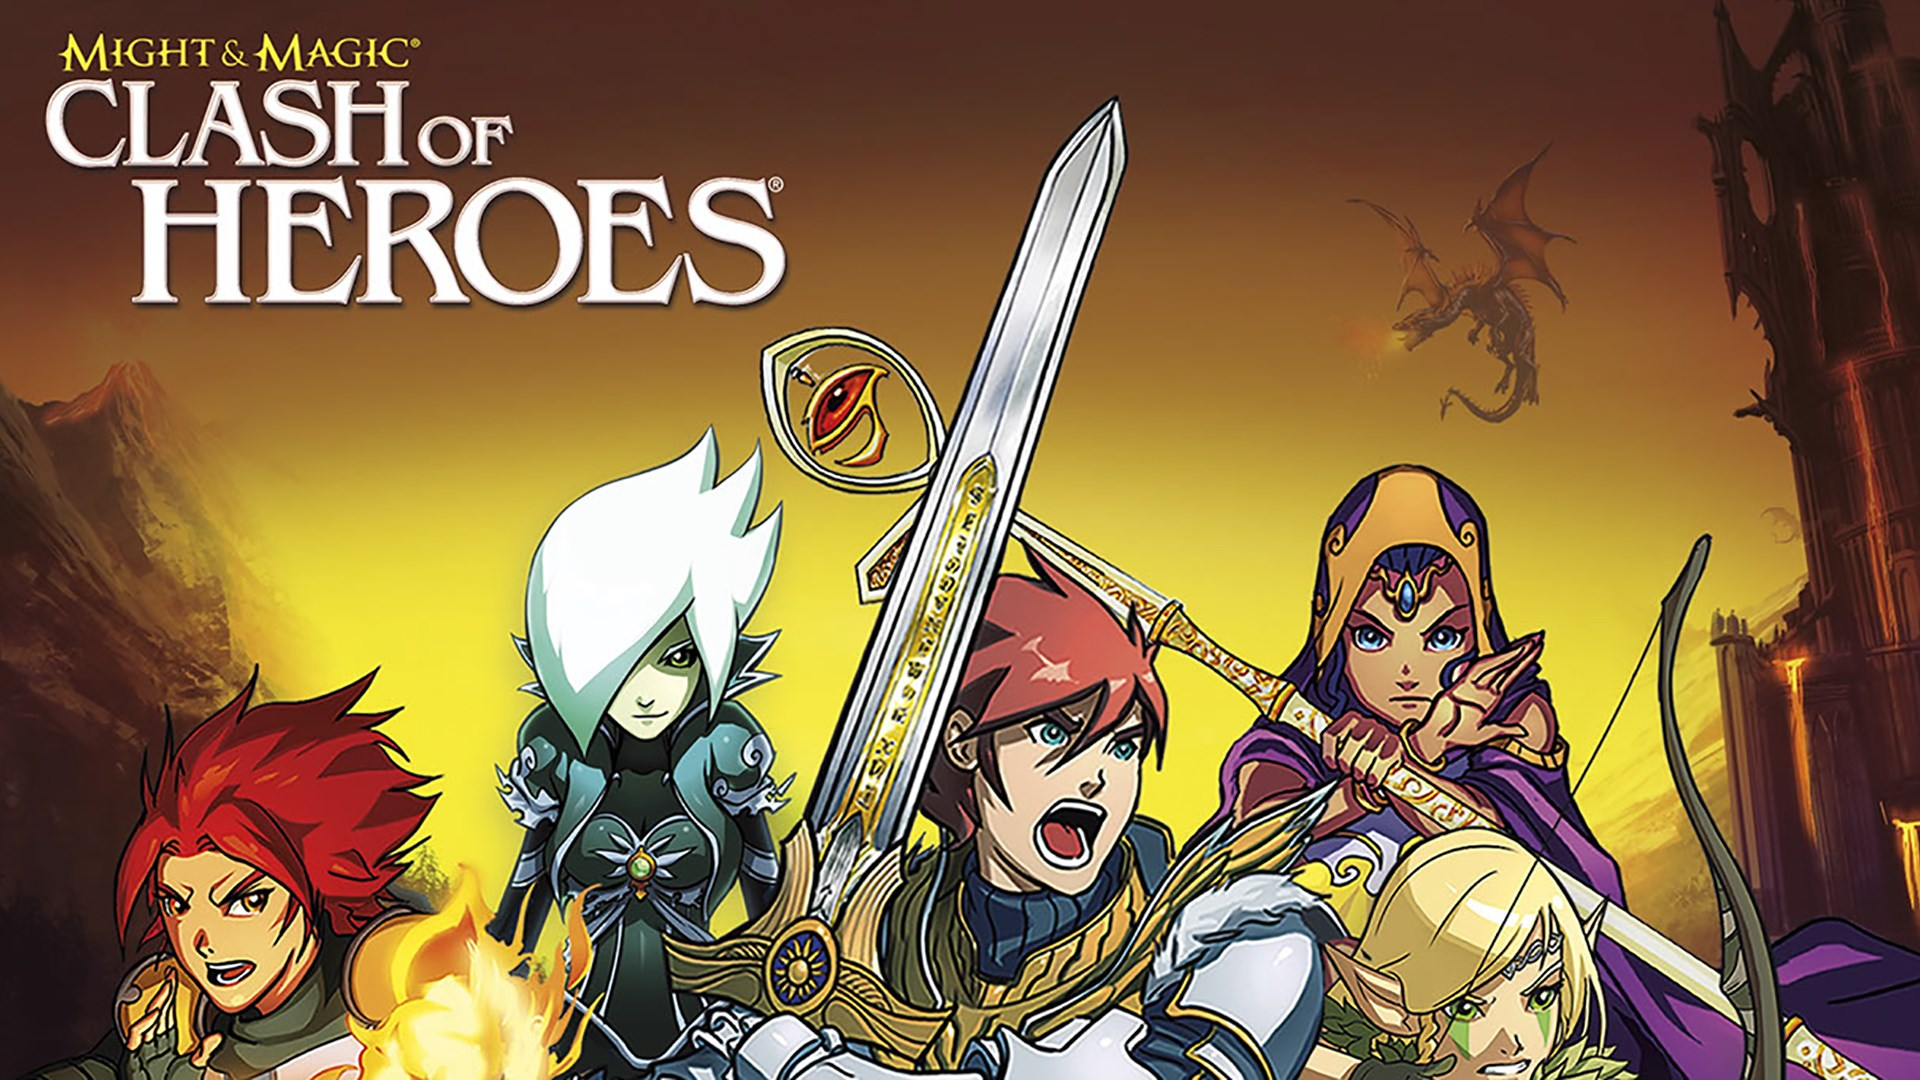 Buy Might & Magic Clash of Heroes™ - Microsoft Store